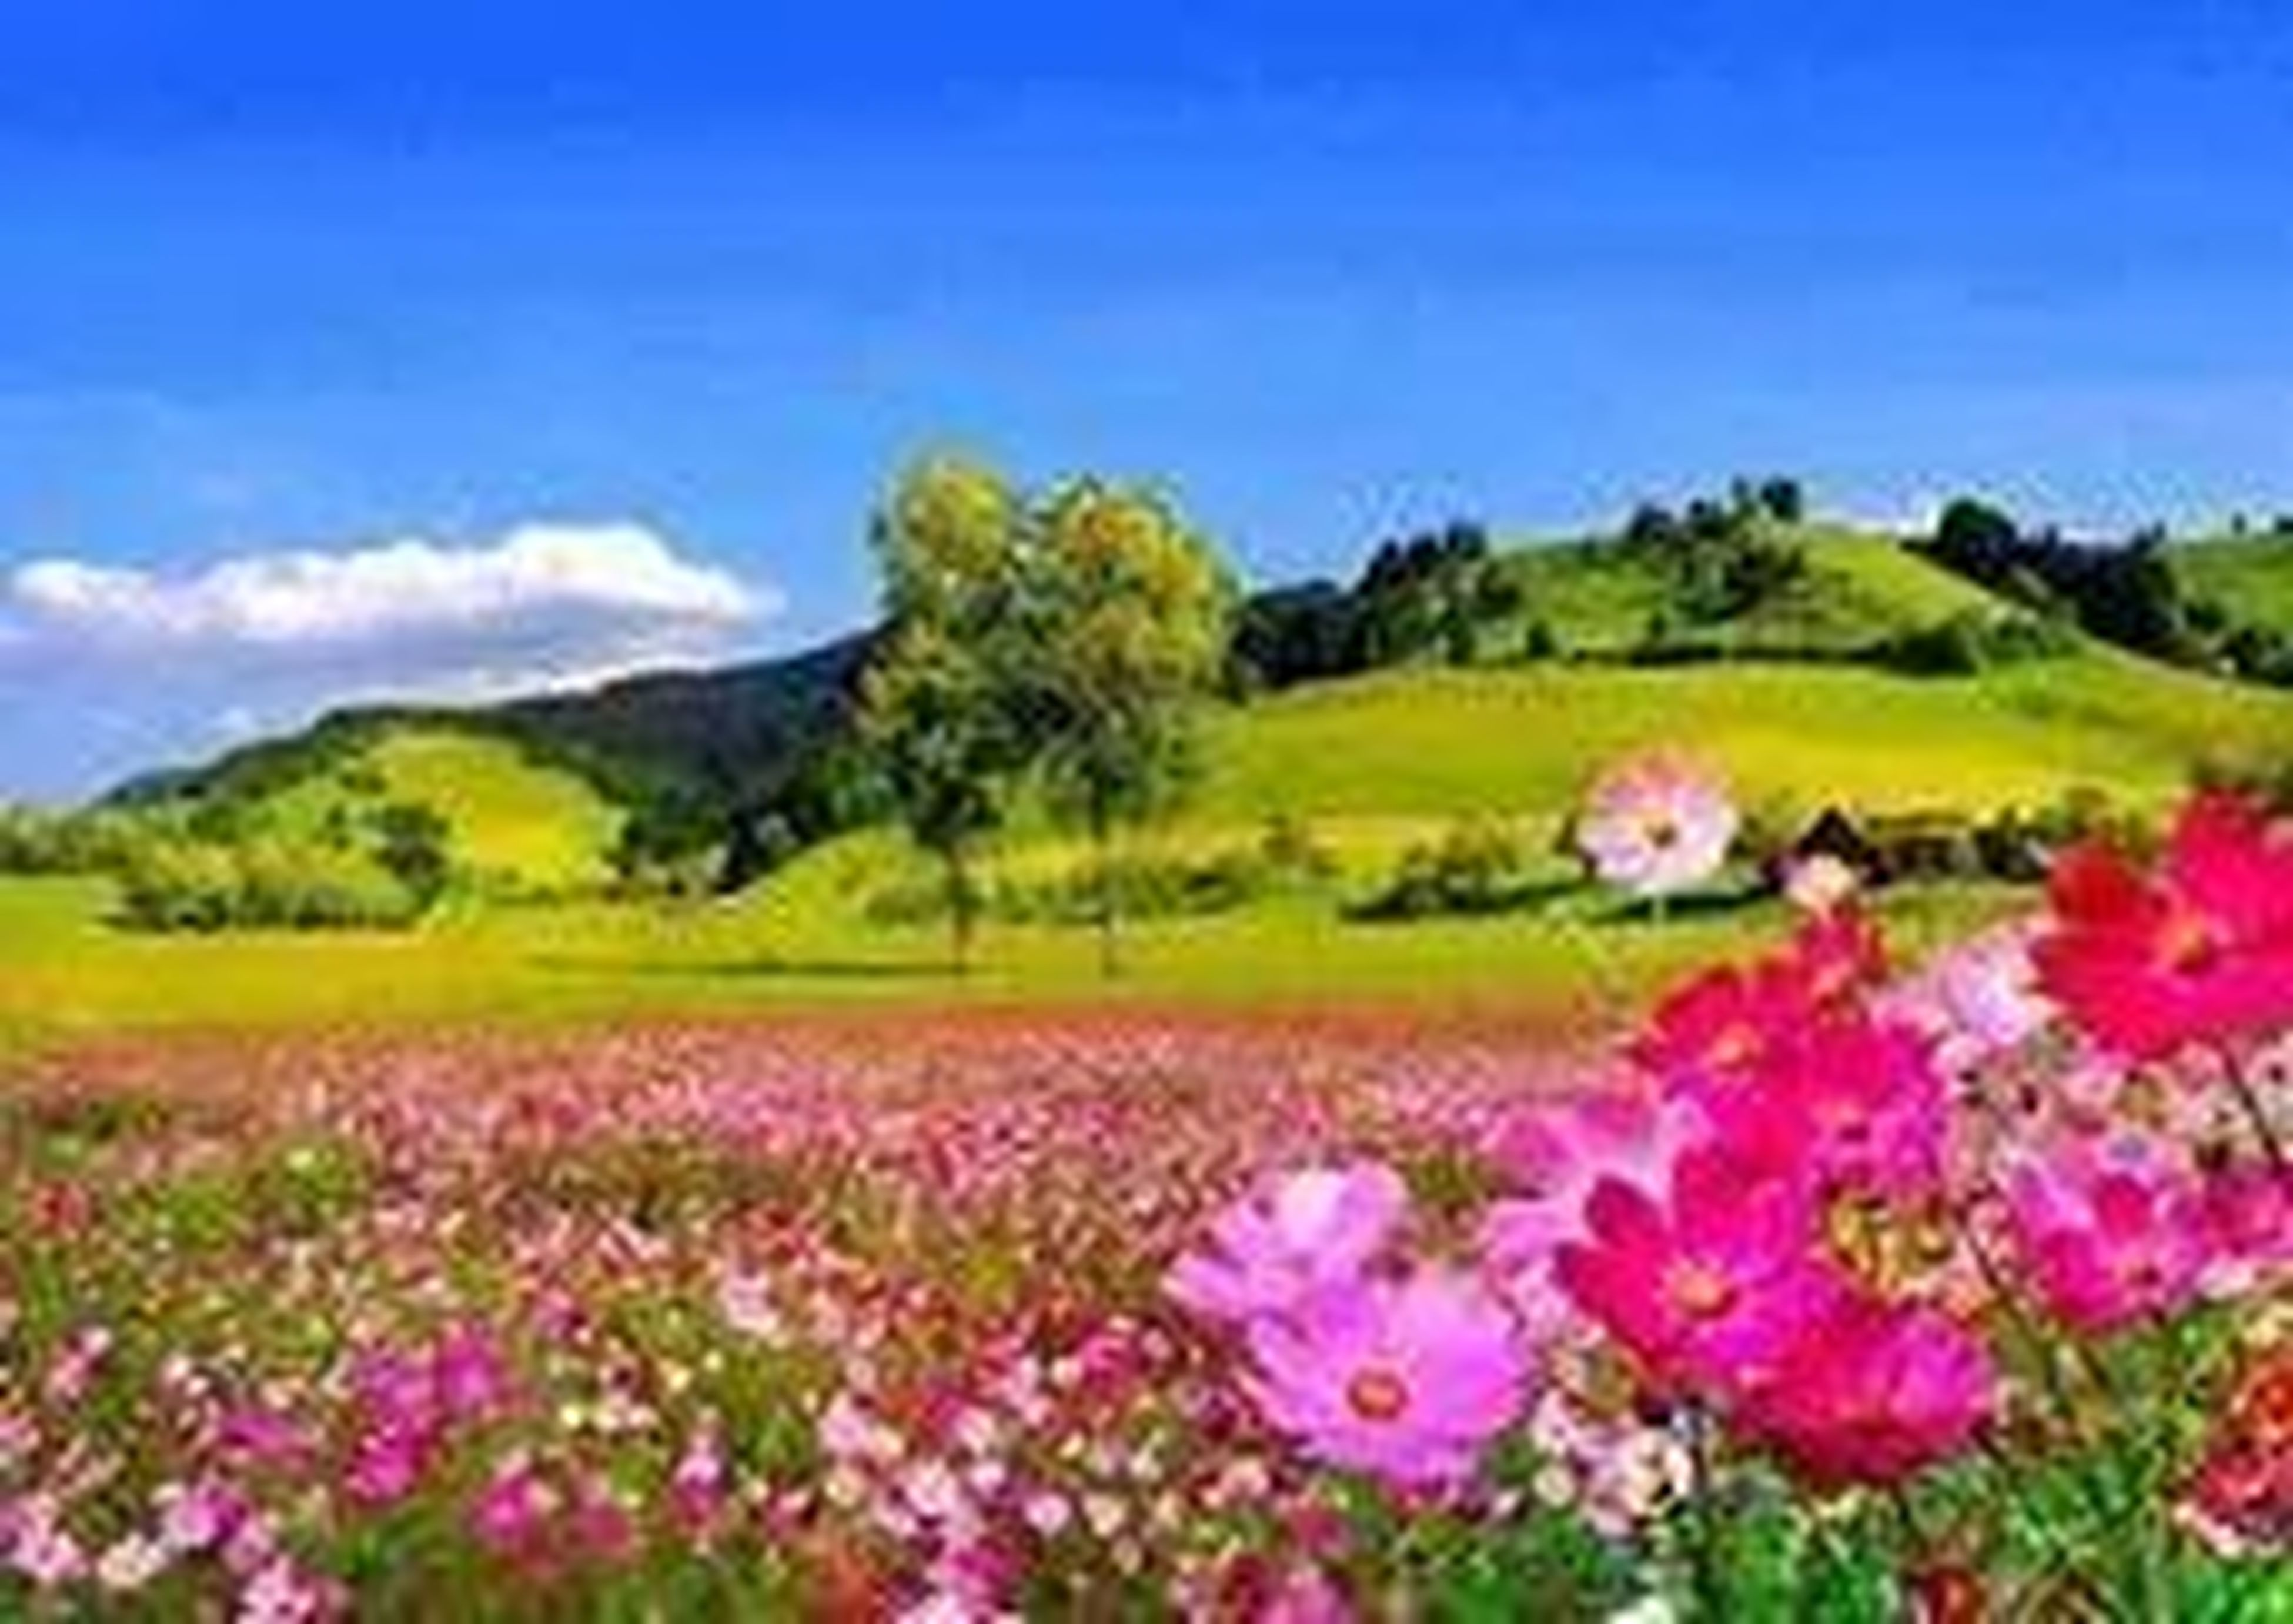 flower, beauty in nature, growth, landscape, field, tranquil scene, freshness, nature, tranquility, scenics, sky, fragility, tree, blooming, plant, blue, wildflower, blossom, in bloom, purple